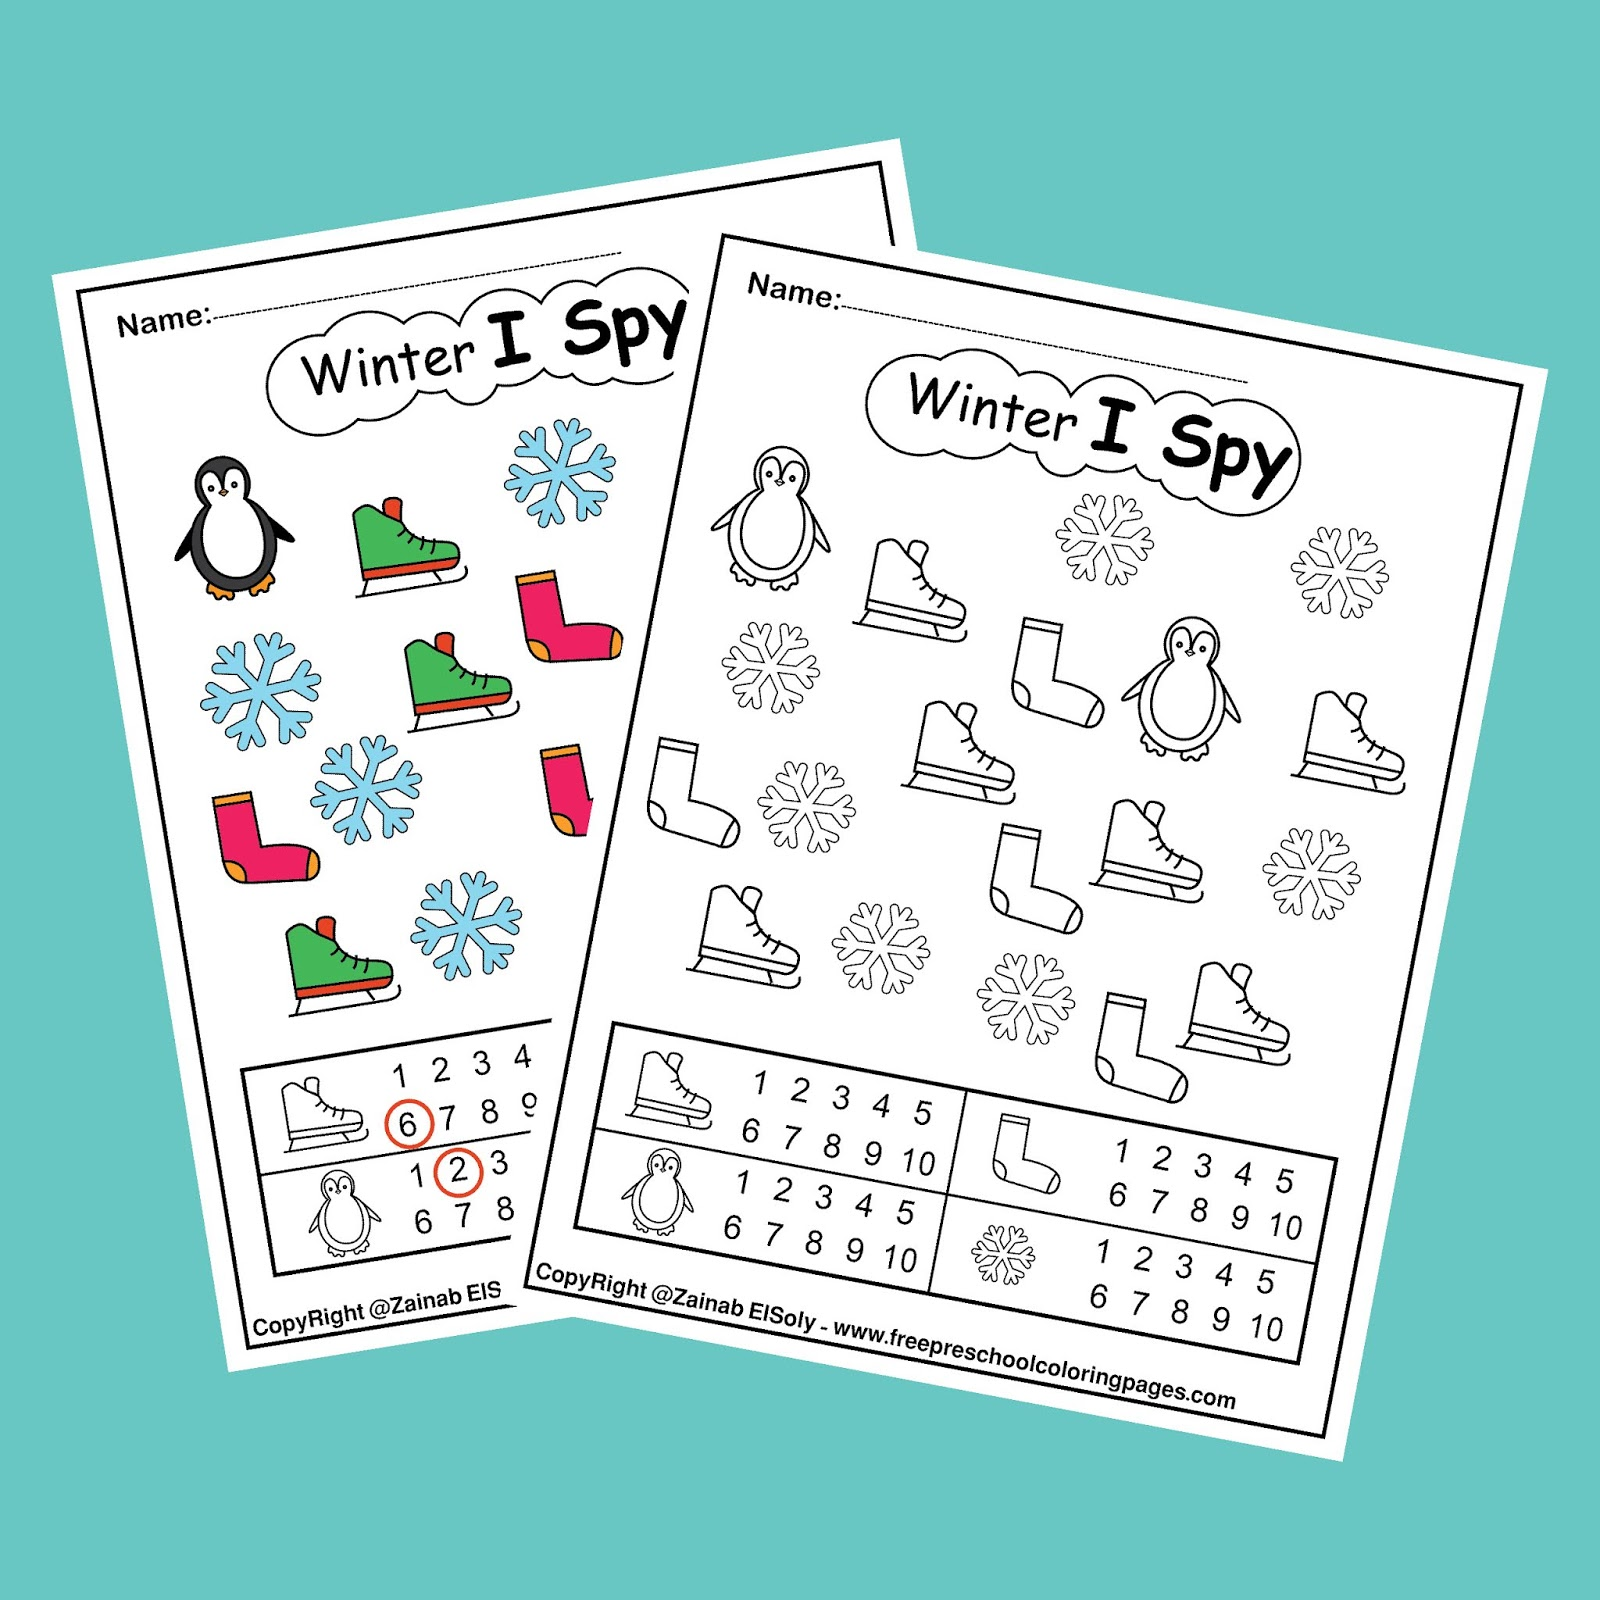 """Winter """"I Spy"""" coloring pages game - easy level"""